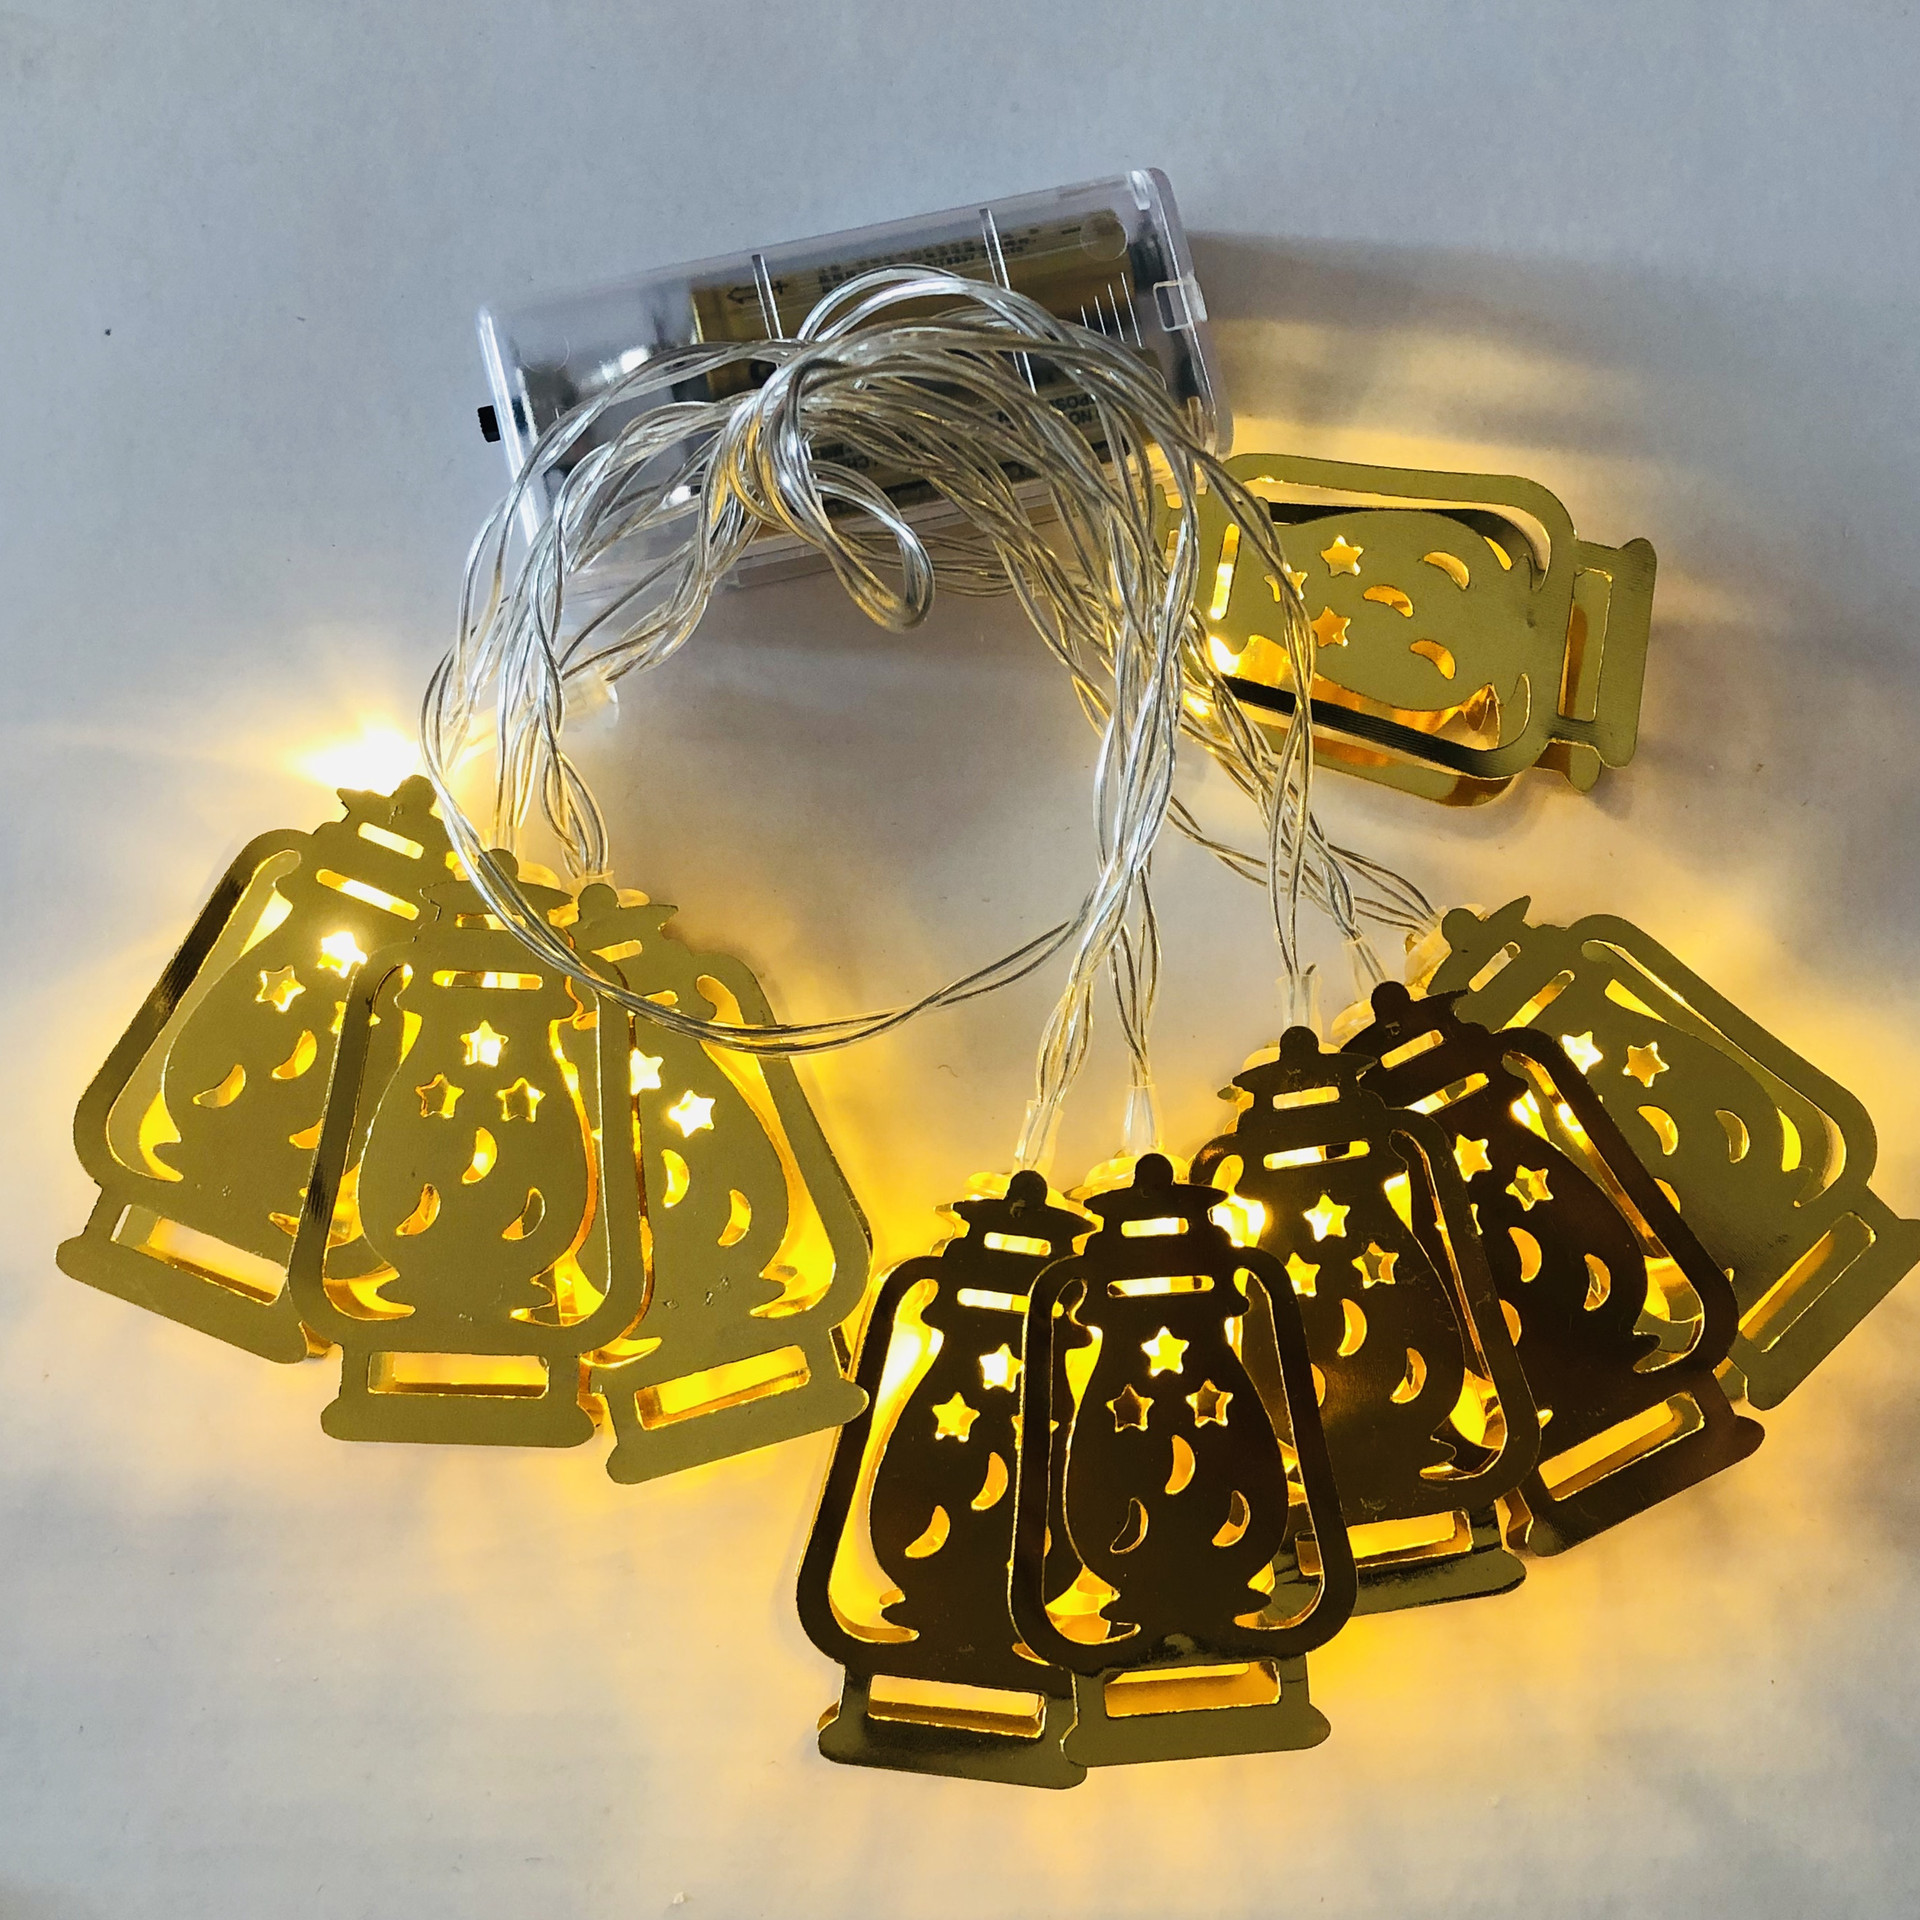 10-LEDs String Lights Muslim Ramadan Decorative Lamp for Festival Party Warm White